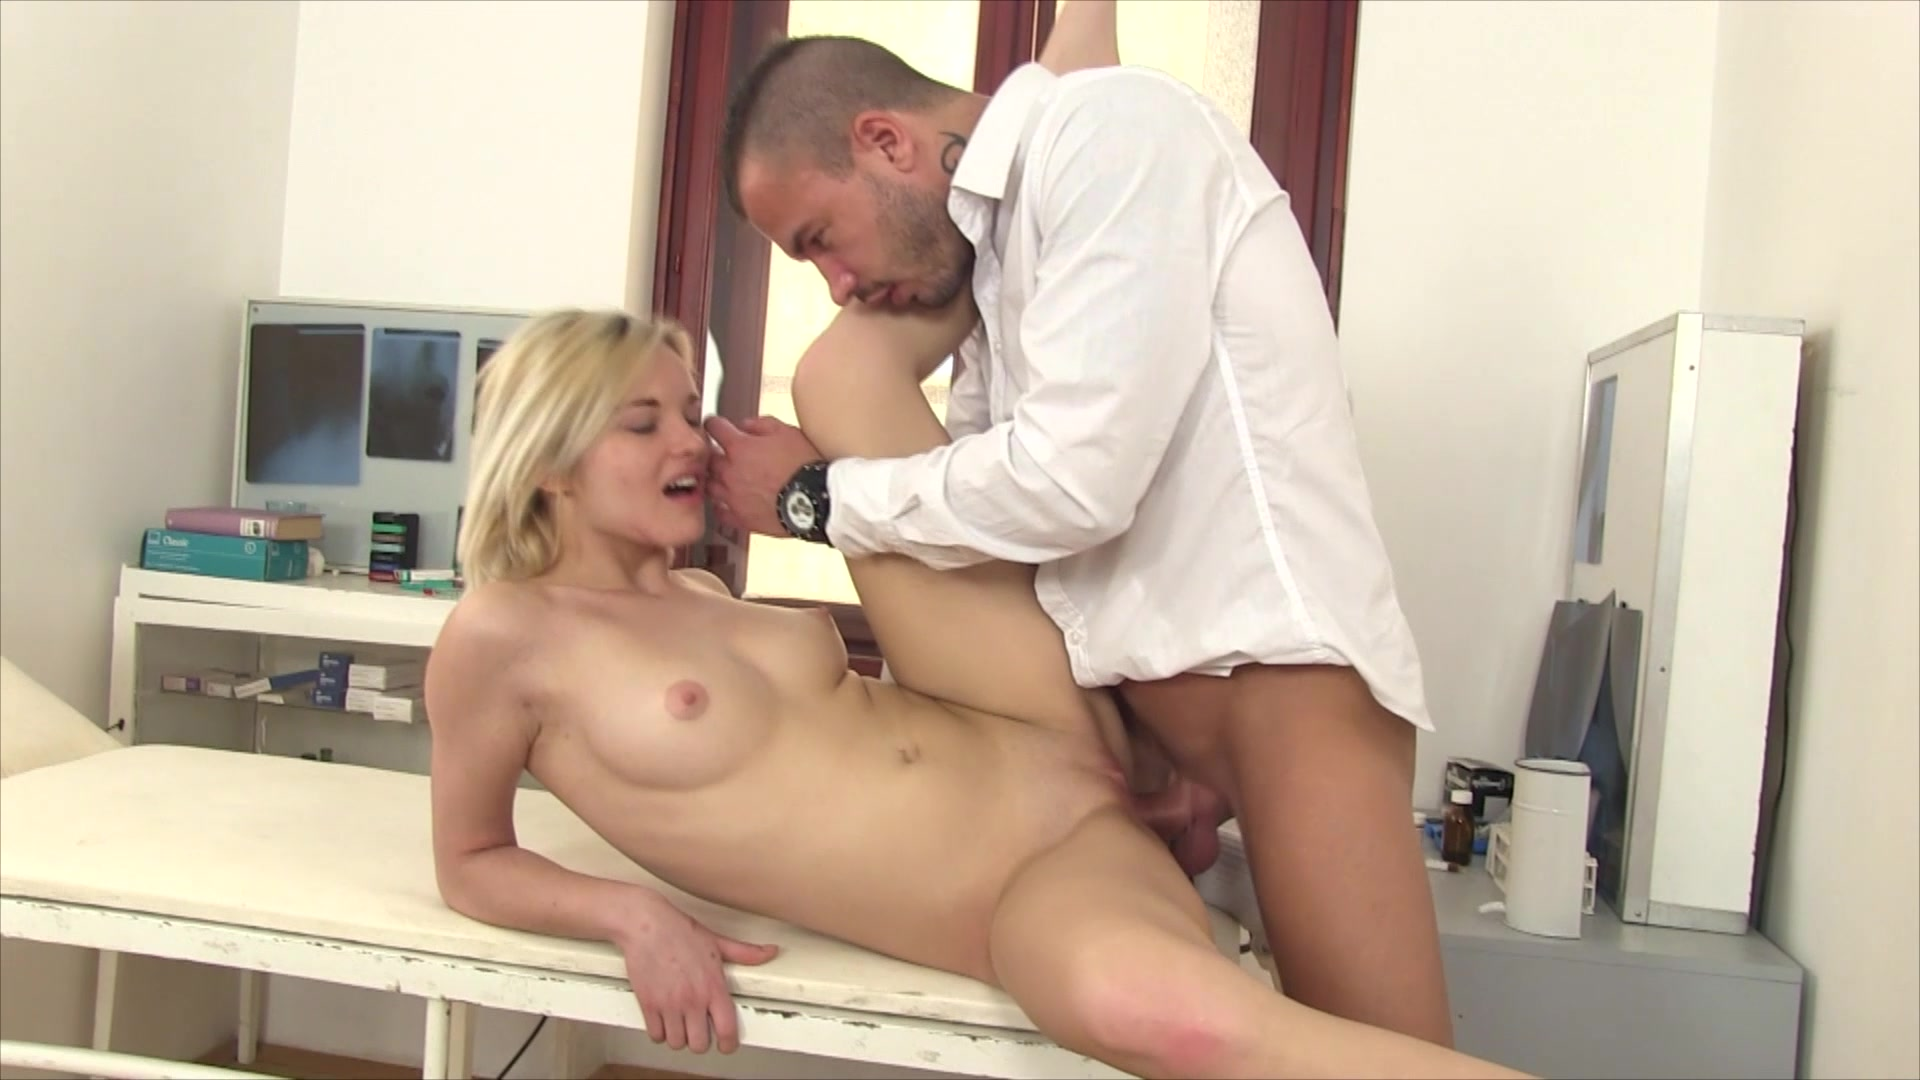 Hot And Wild Hardcore Hospital Group Sex With Big Tits Nurses And Doctors